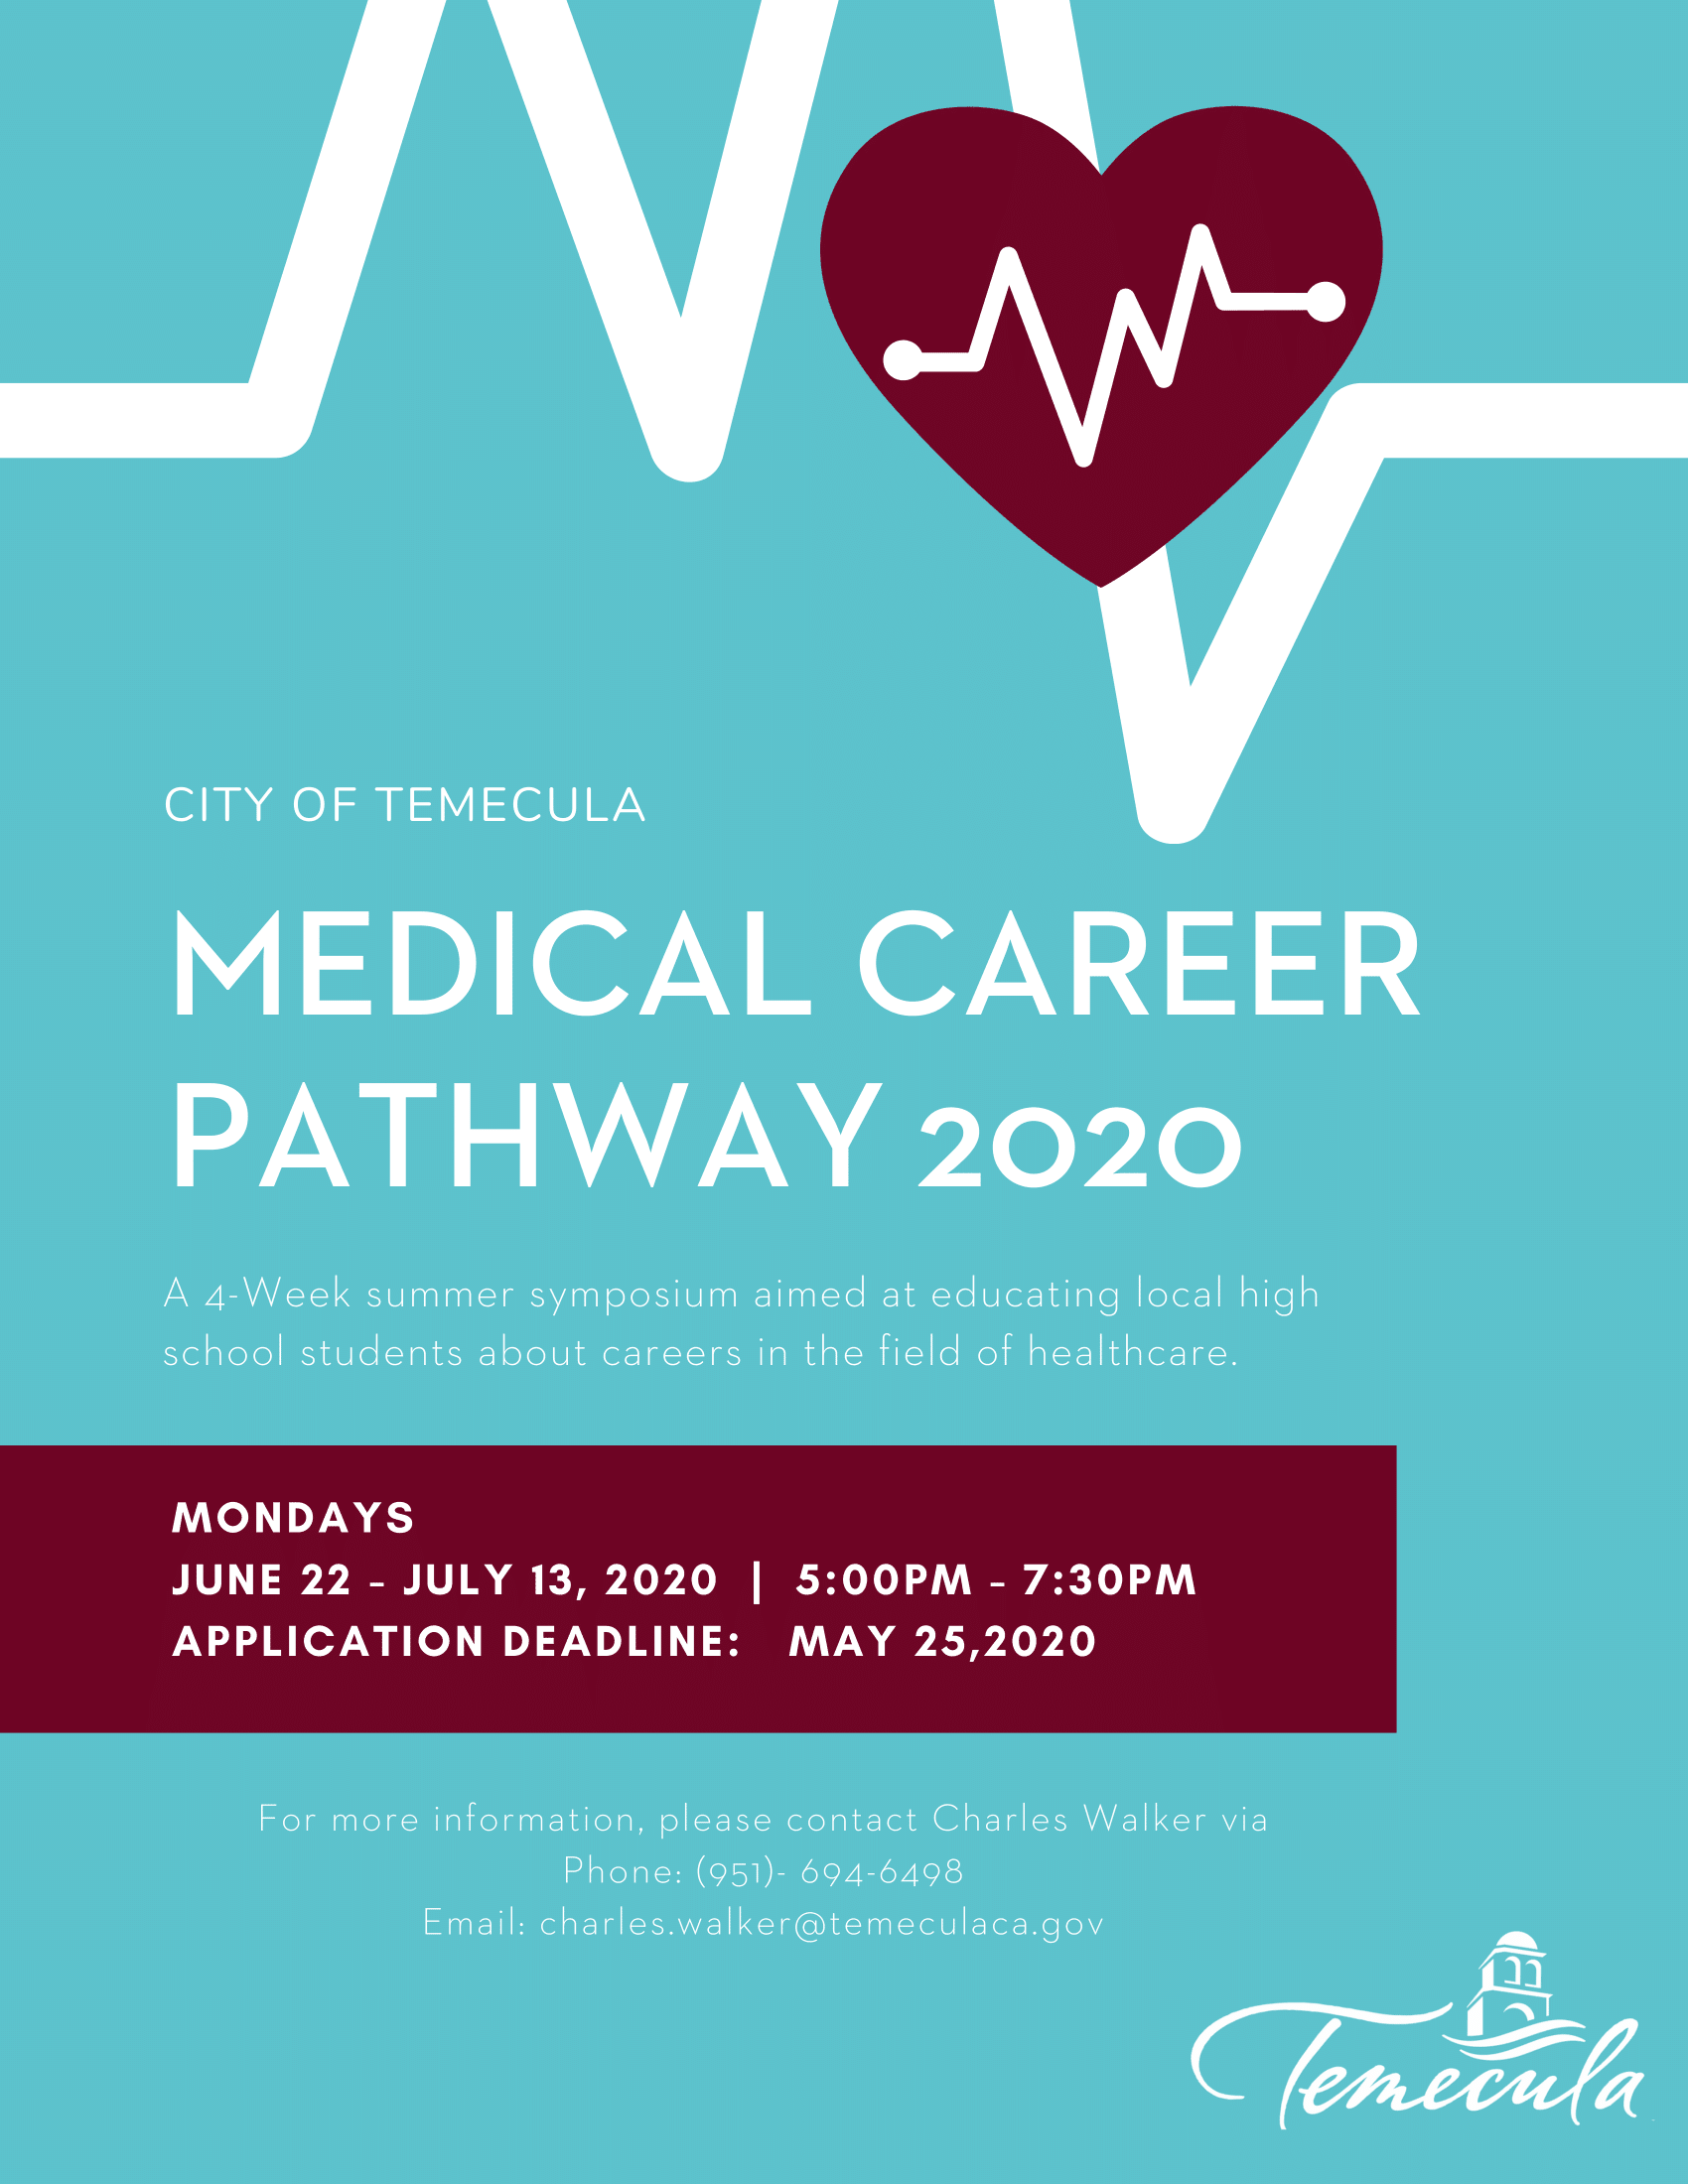 Medical Career Pathway Flyer-1